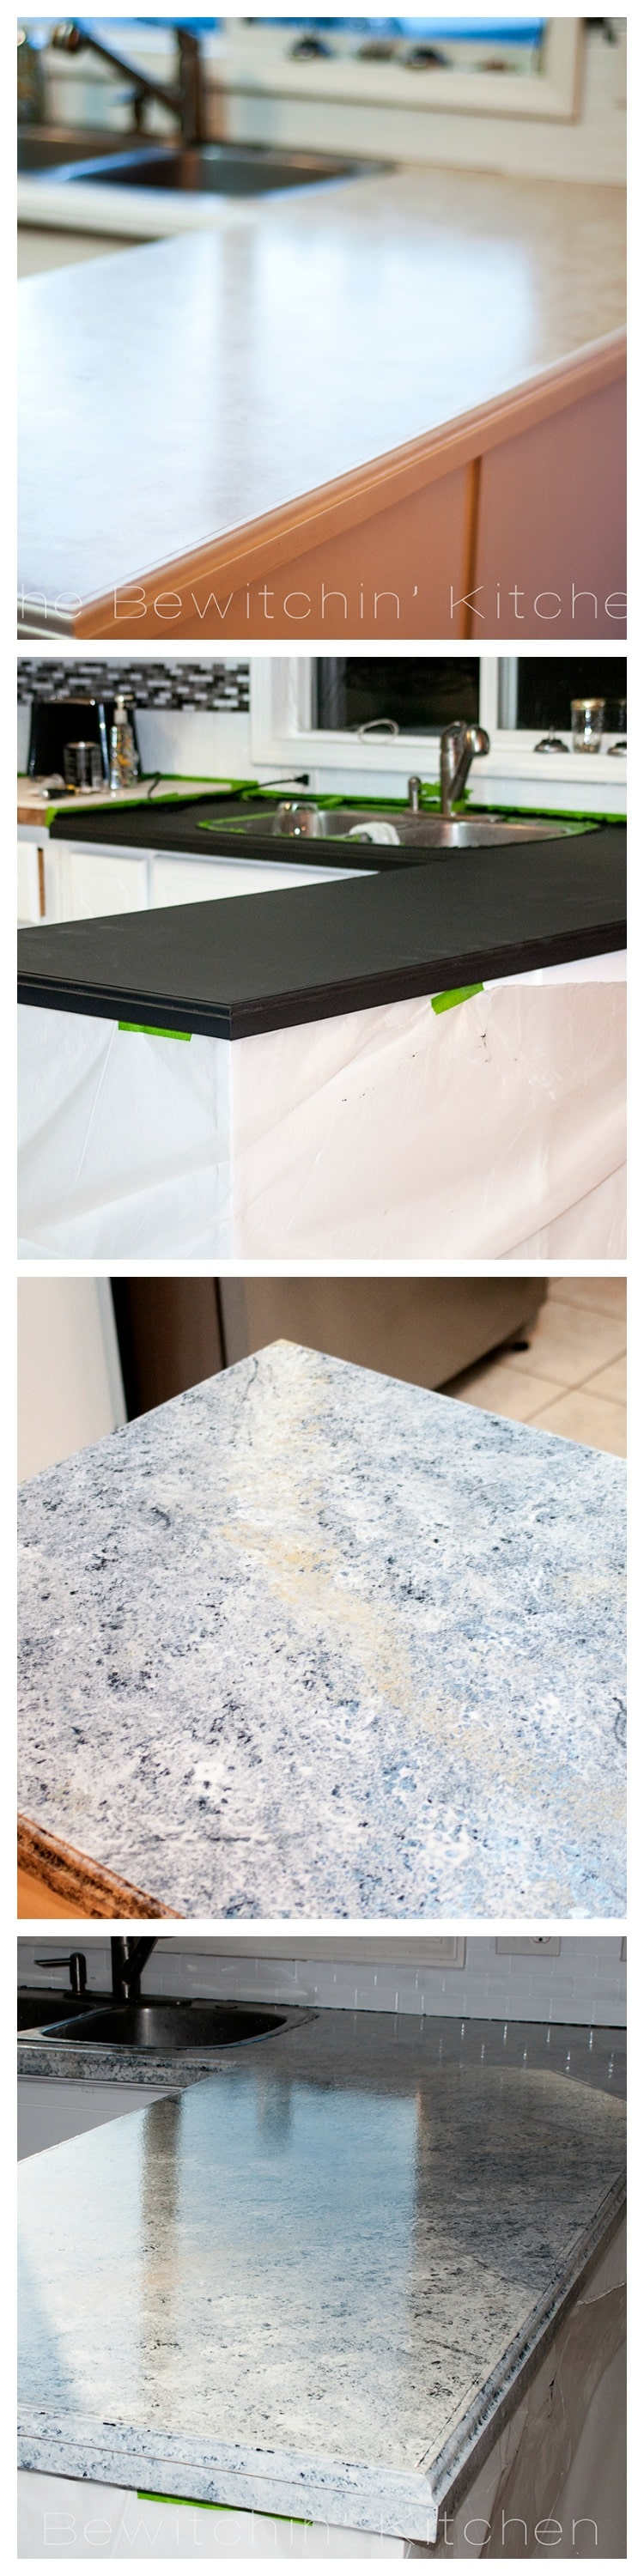 Painting Bathroom Countertops To Look Like Granite - home decor ...